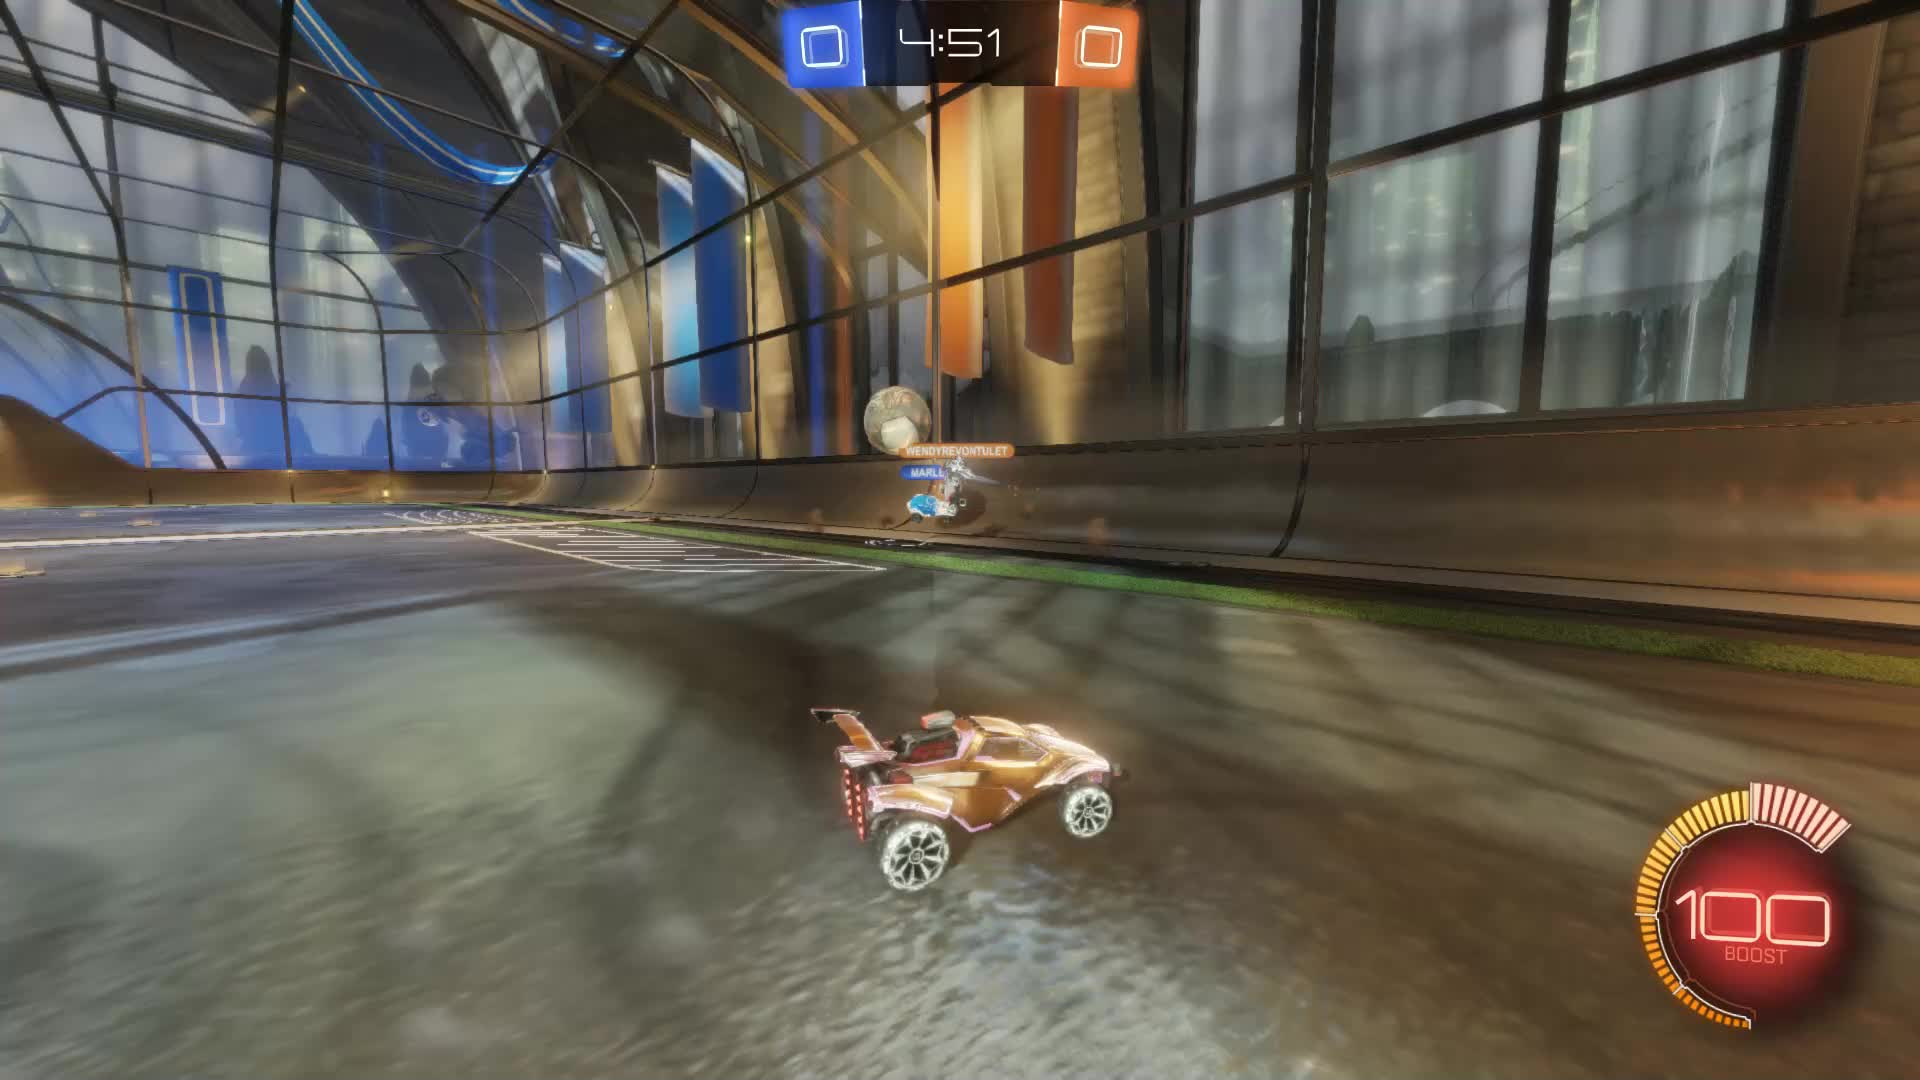 Gif Your Game, GifYourGame, Goal, Rocket League, RocketLeague, SCOTLAND FOREVER, Goal 1: SCOTLAND FOREVER GIFs